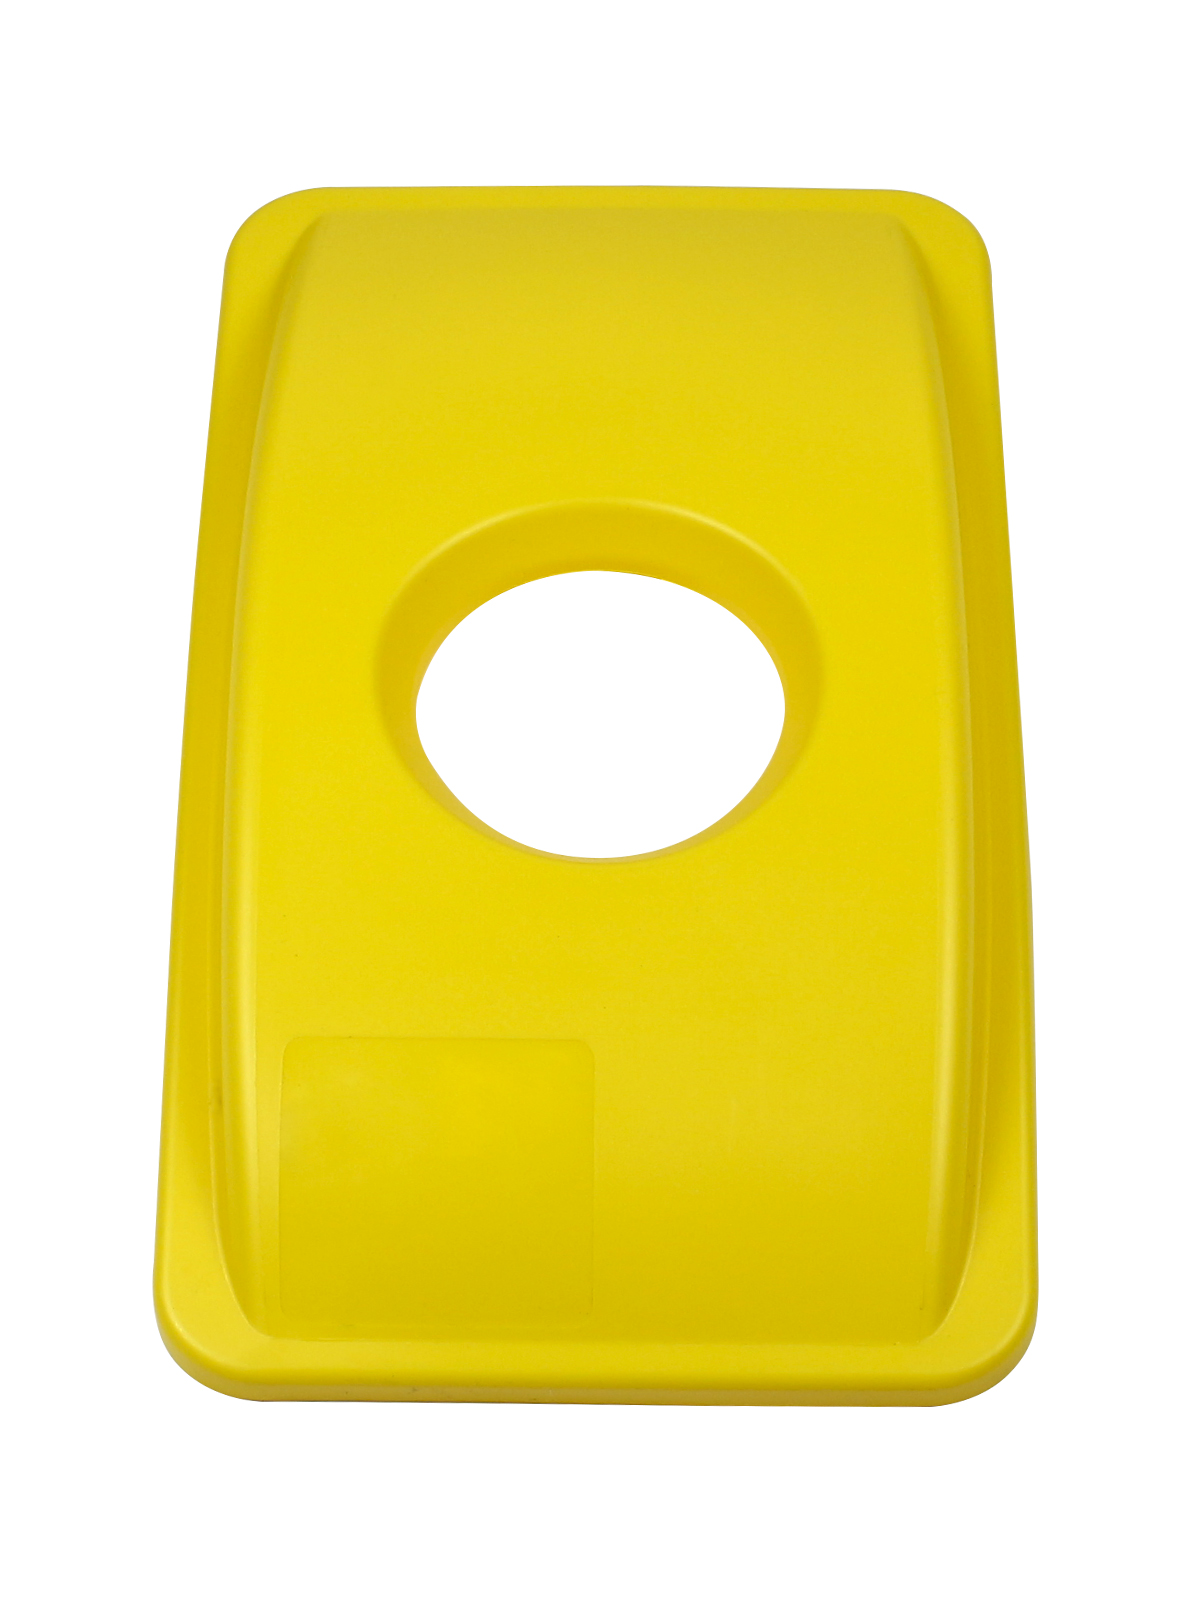 WASTE WATCHER - Lid - Circle - Yellow